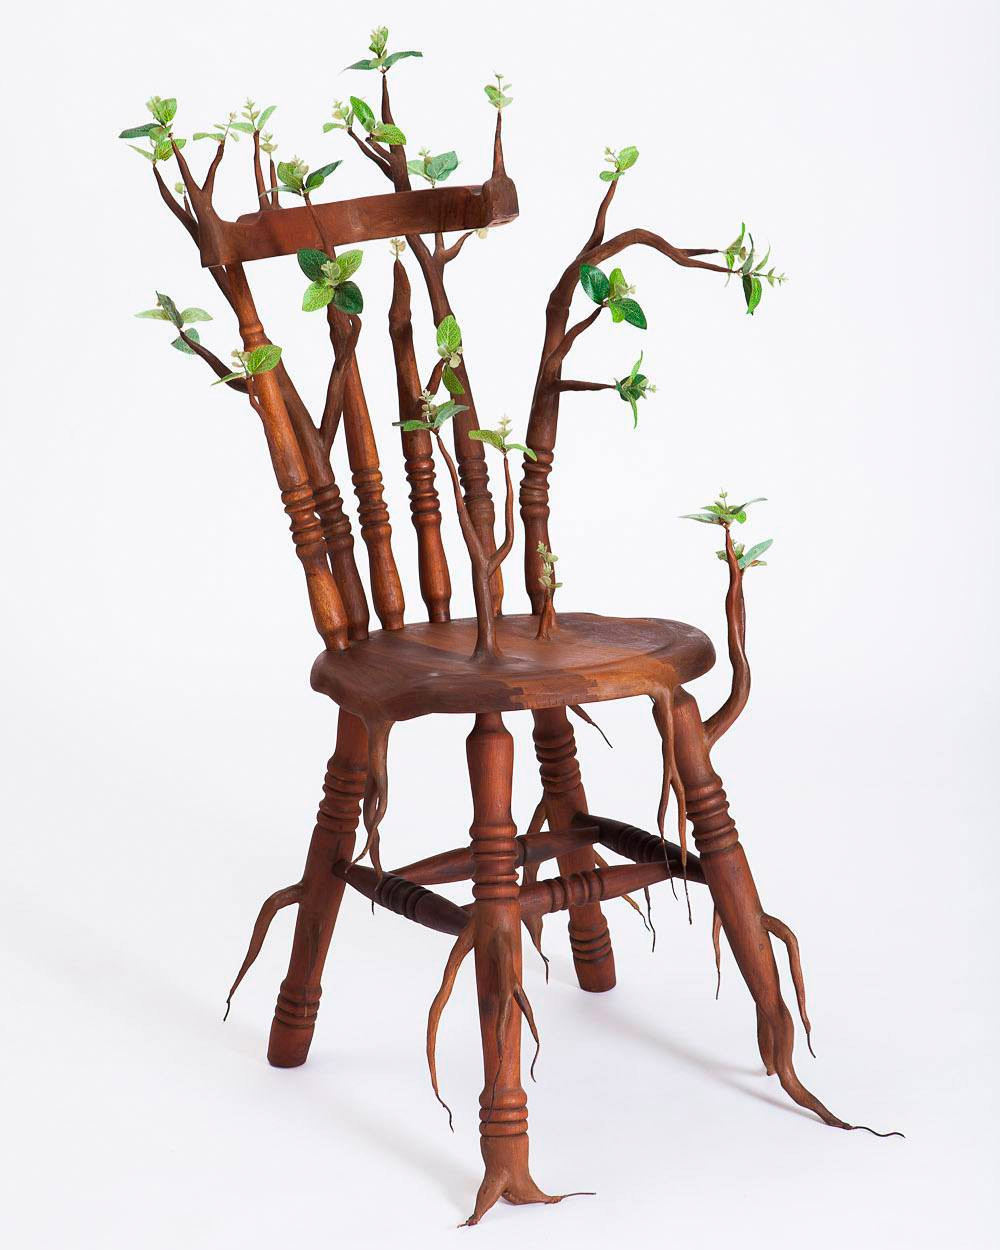 funny wood sculpture by chair camille kachani